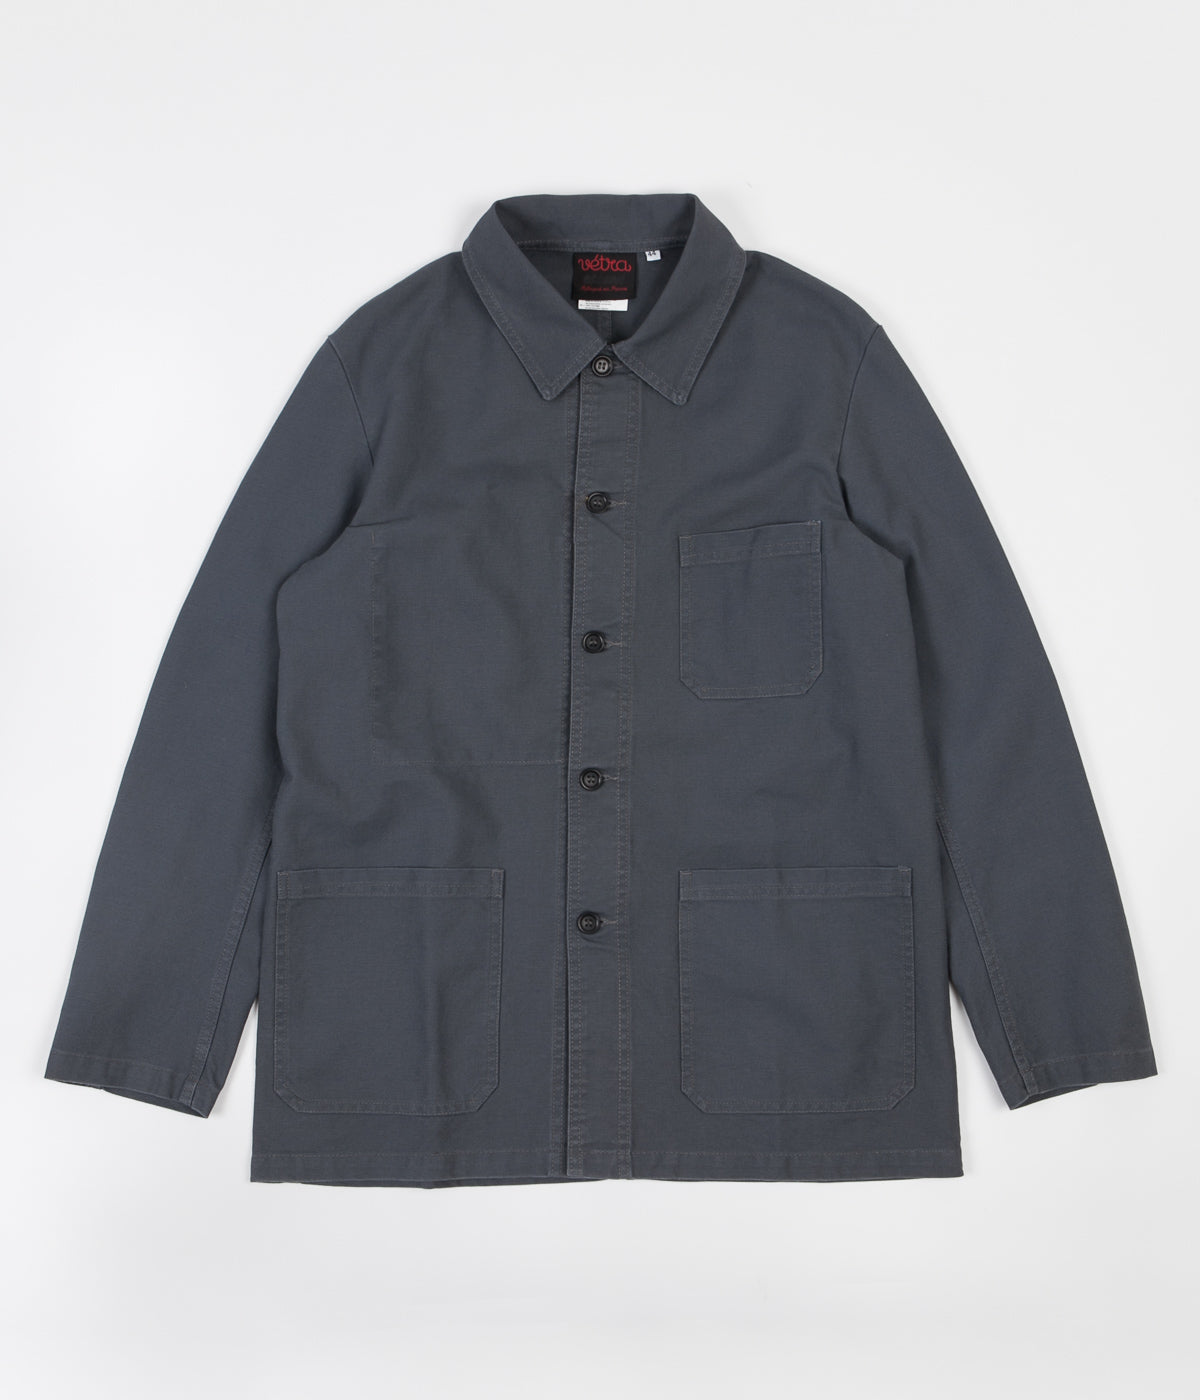 Vetra No.4 Workwear Jacket - Metal Grey